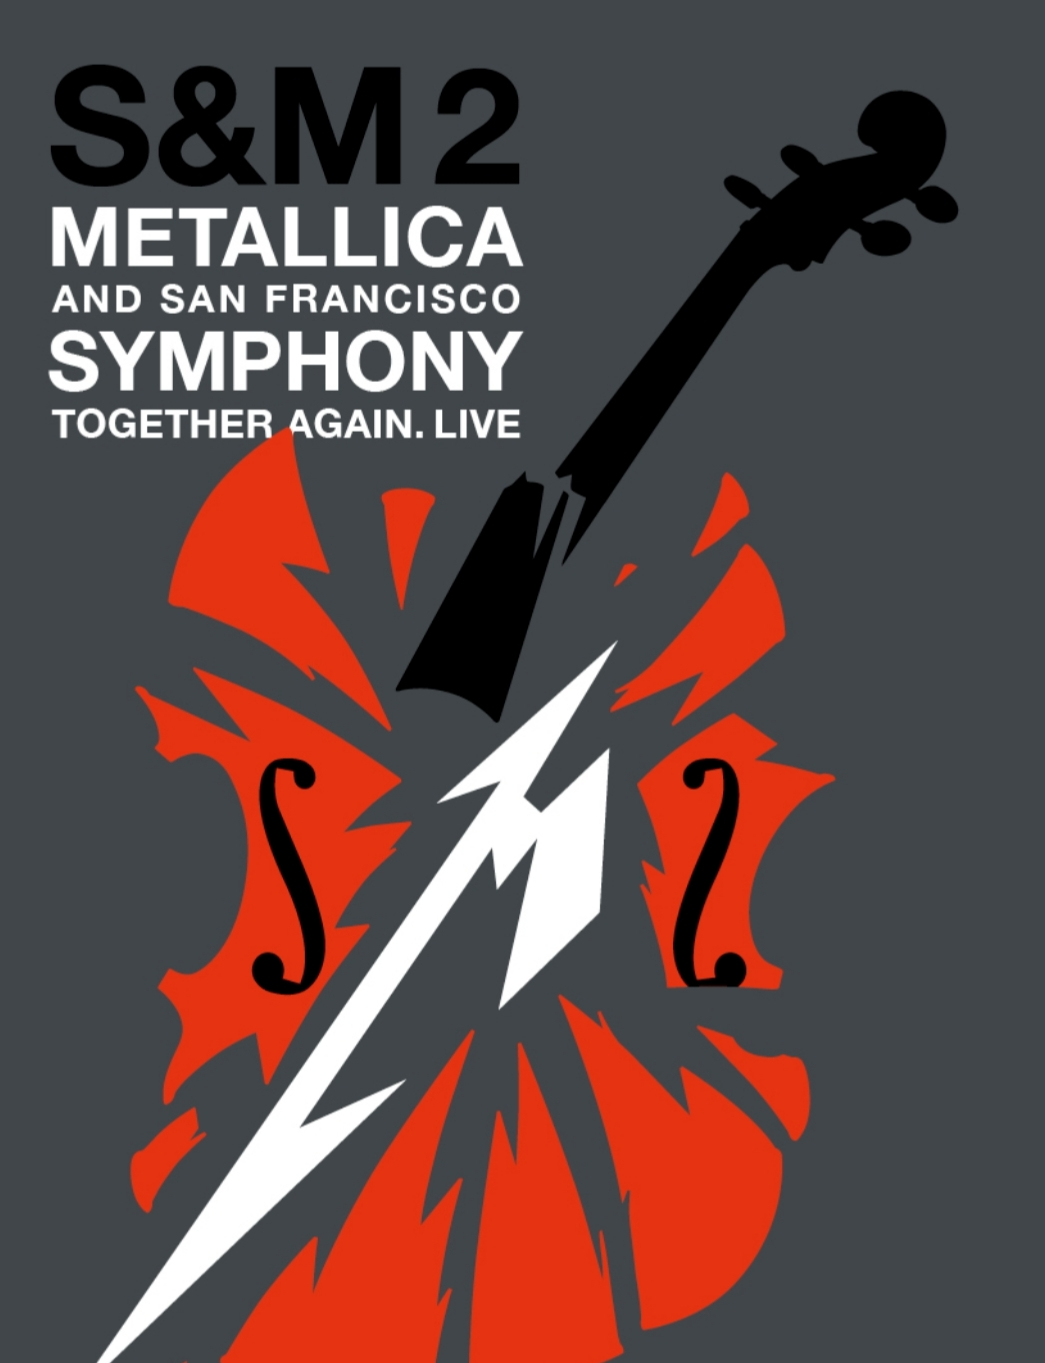 METALLICA – LE CONCERT AU CINEMA